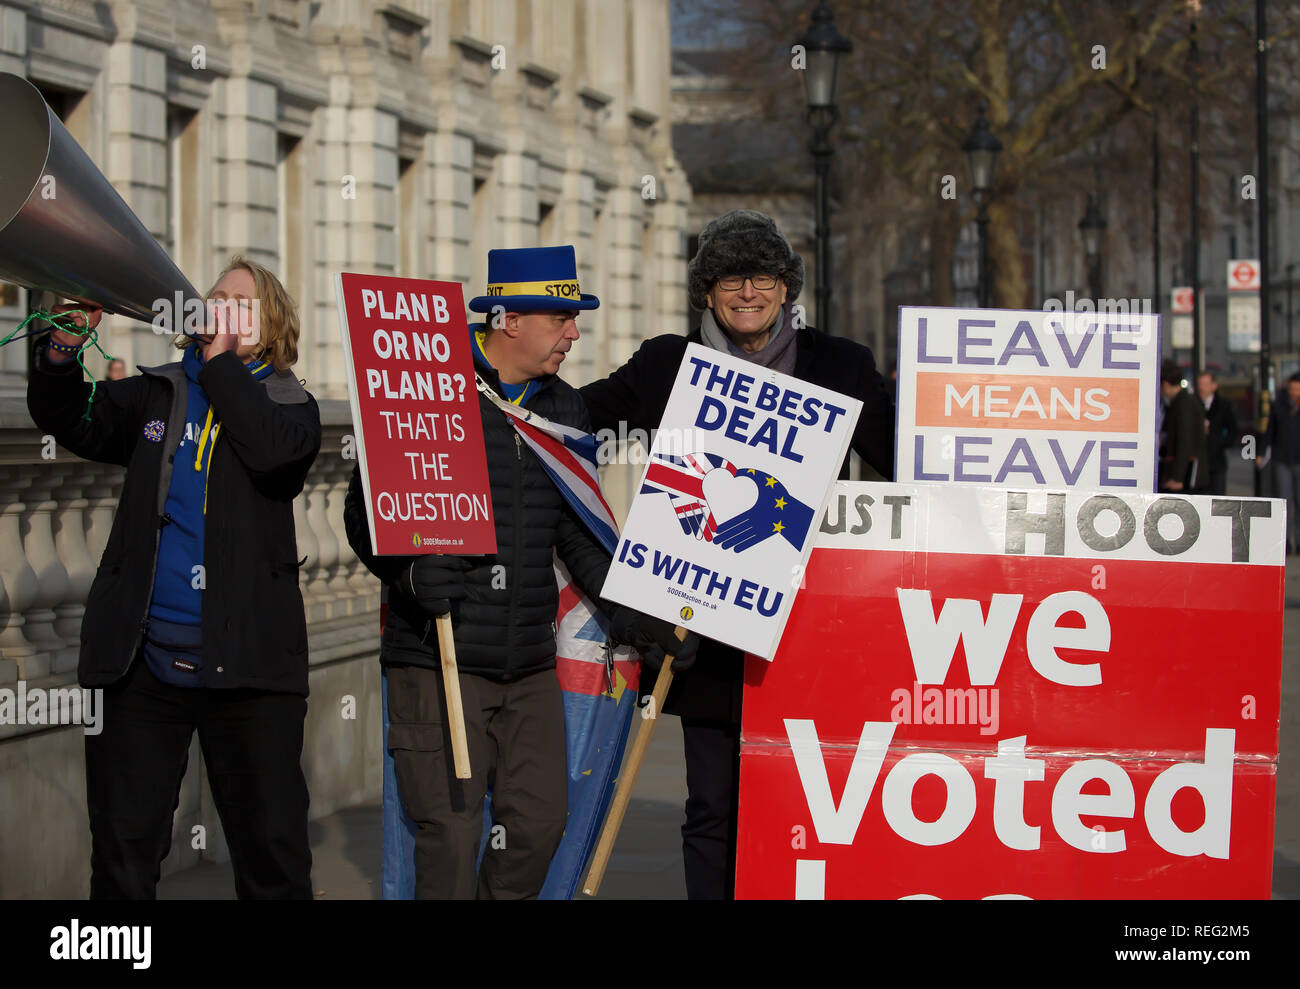 London, UK. 21st January 2019. Opposing Brexit demonstrators protest outside Downing Street. Credit: Keith Larby/Alamy Live News - Stock Image